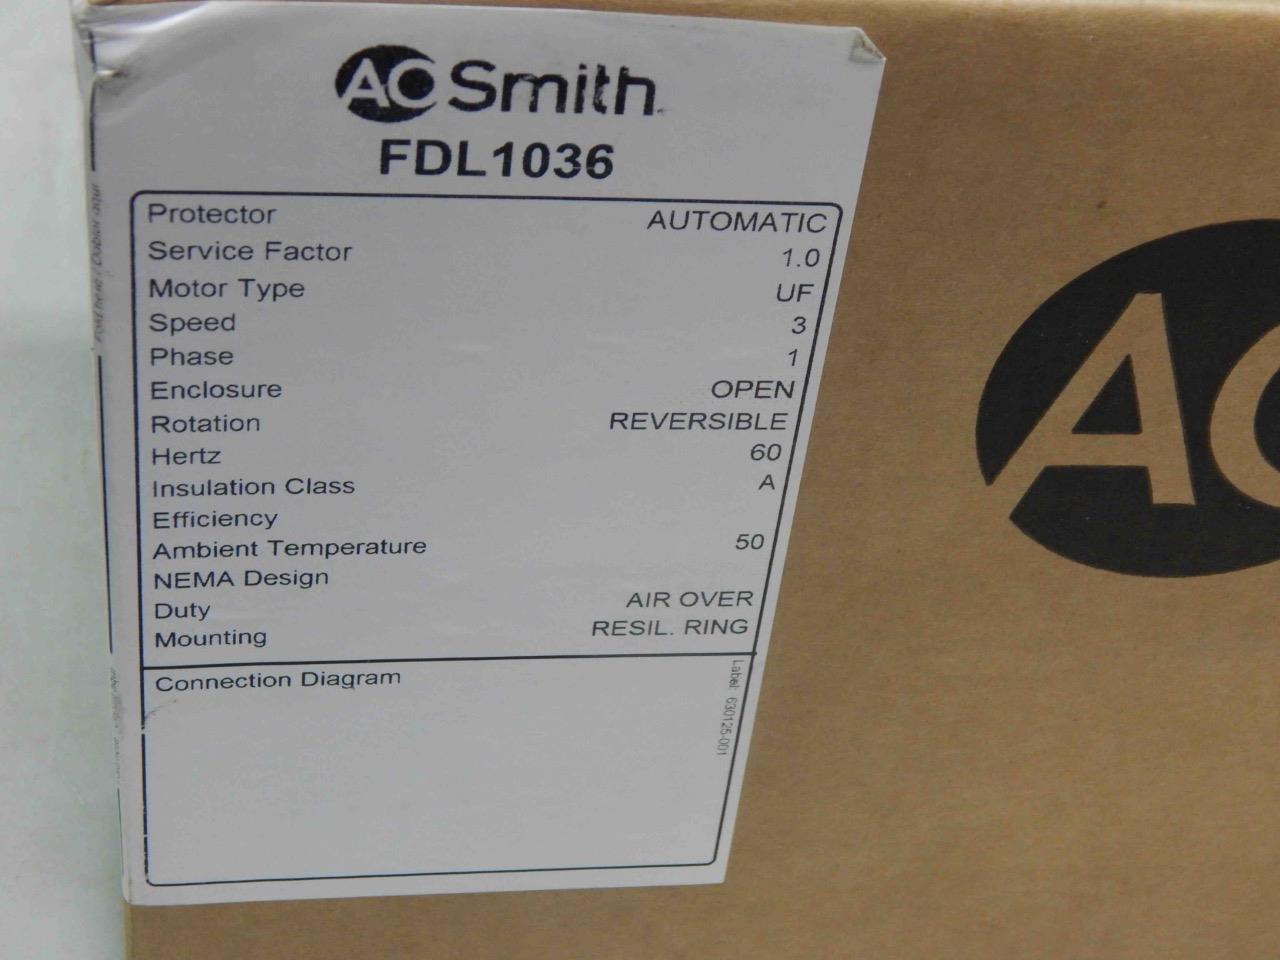 17 AO Smith Motor FDL1036 4MA66 13HP 115V RPM 10753 Spd 48Y Fr NEW 222065080584 3?resize\\\\\\\\\\\\\\\=665%2C499 ebm papst fan wiring diagram 115v gandul 45 77 79 119  at fashall.co